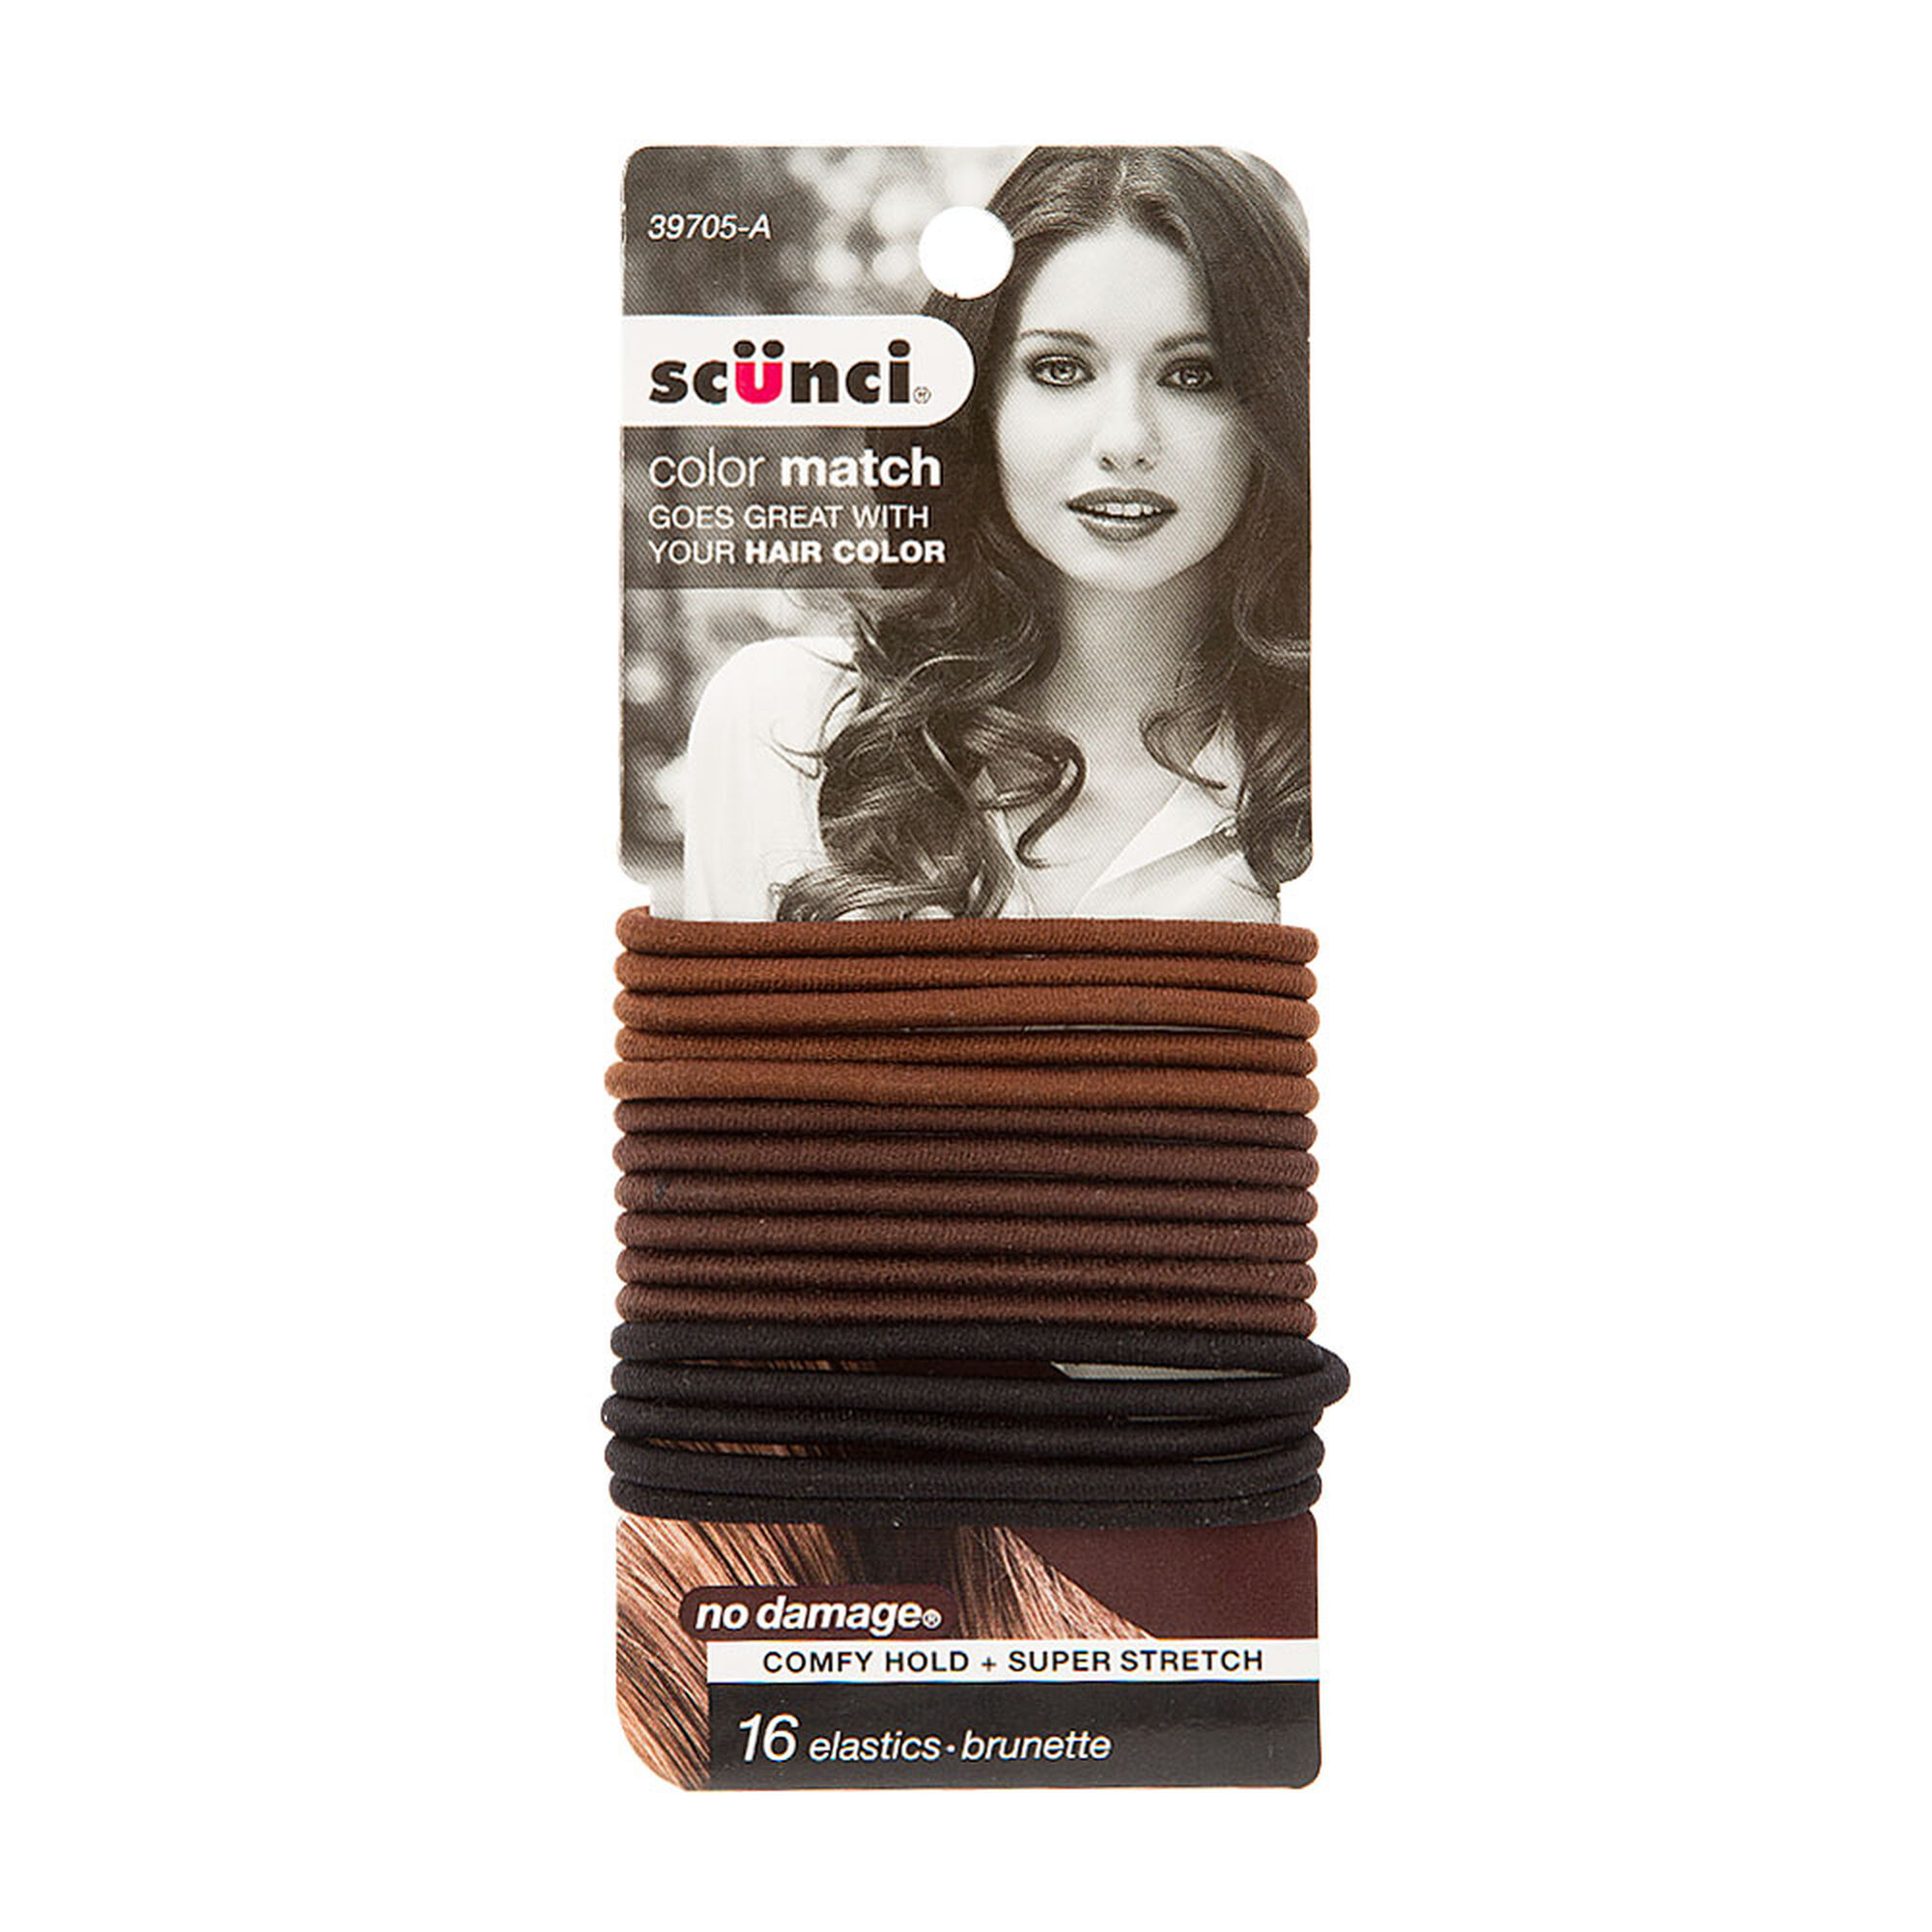 Color Match By Scunci Orted Brunette Hair Ties